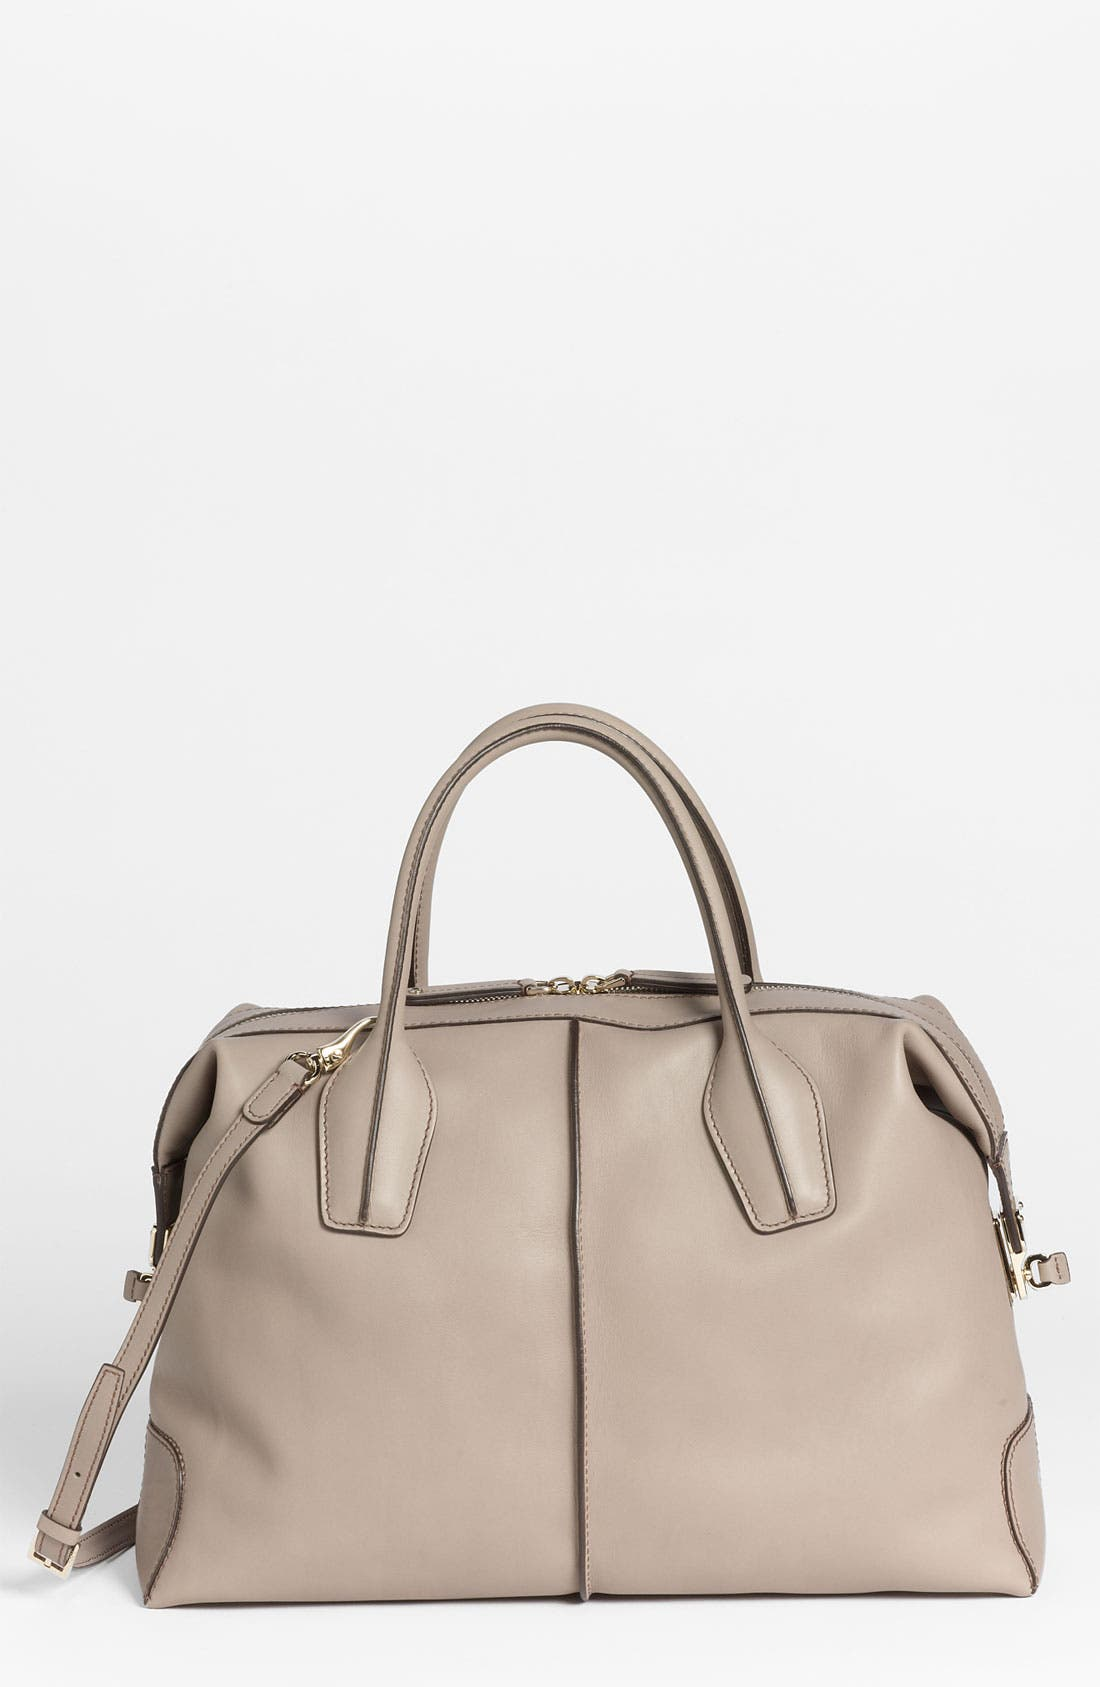 Main Image - Tod's 'D-Styling - Medium' Leather Satchel